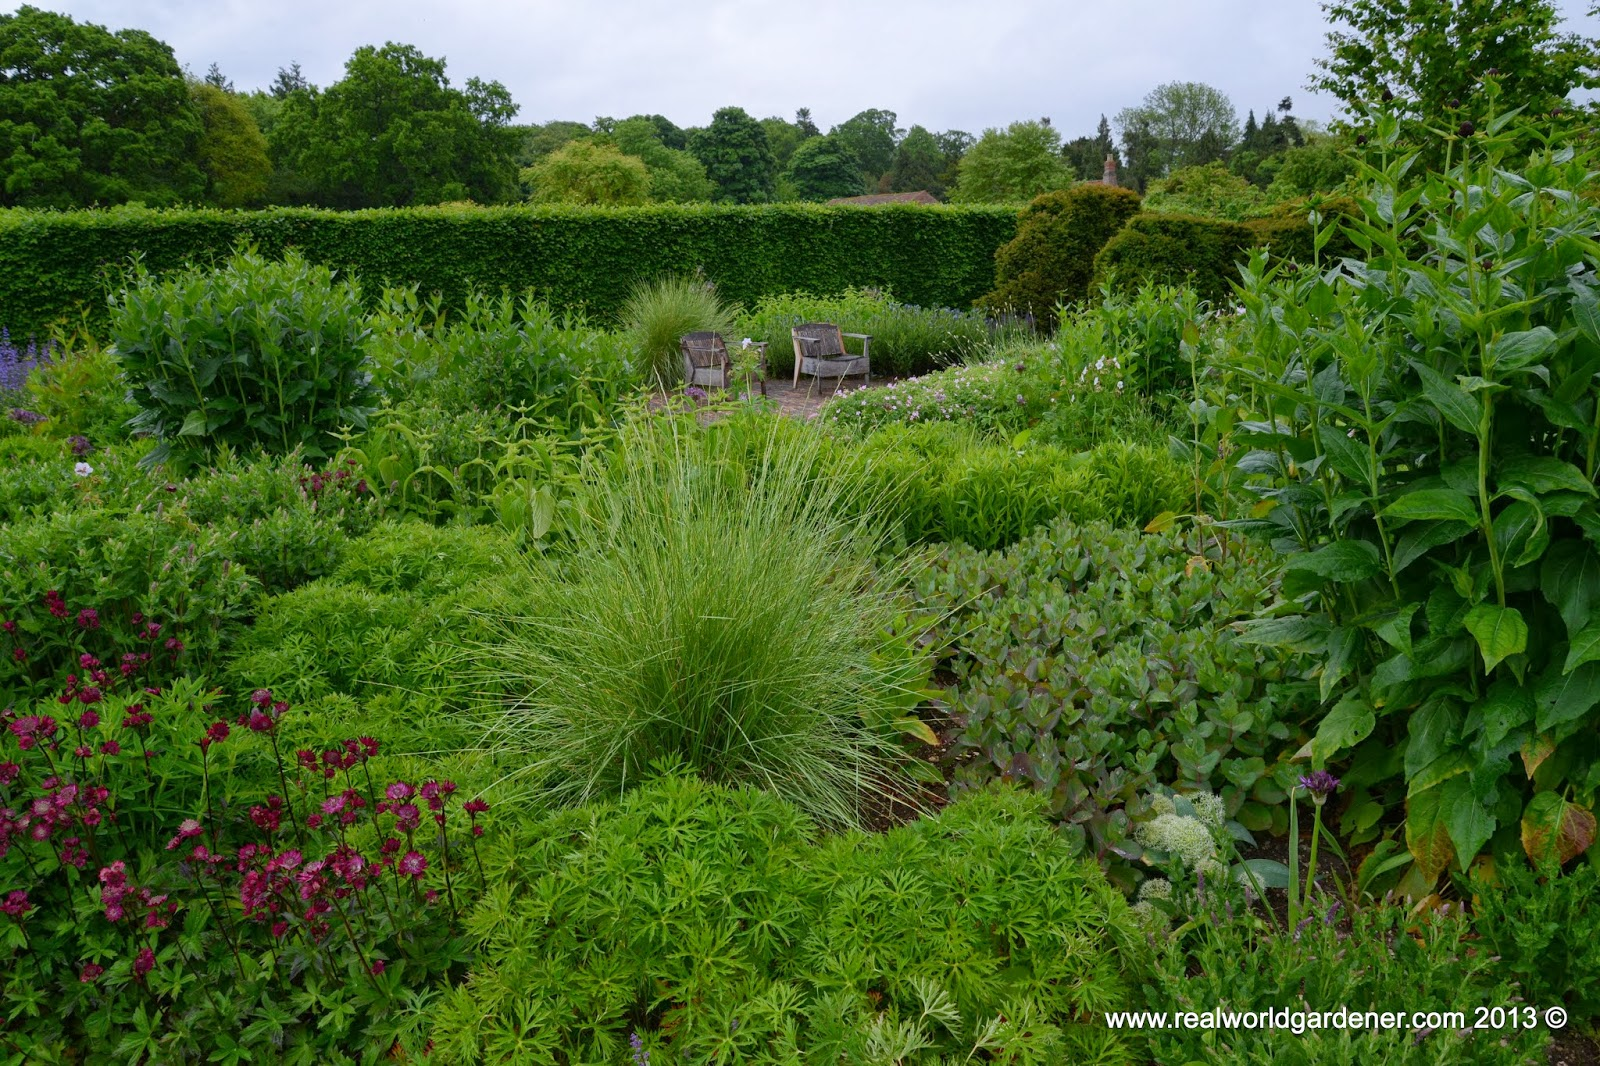 Real World Gardening Introduction To Garden Design With Ornamental Grasses